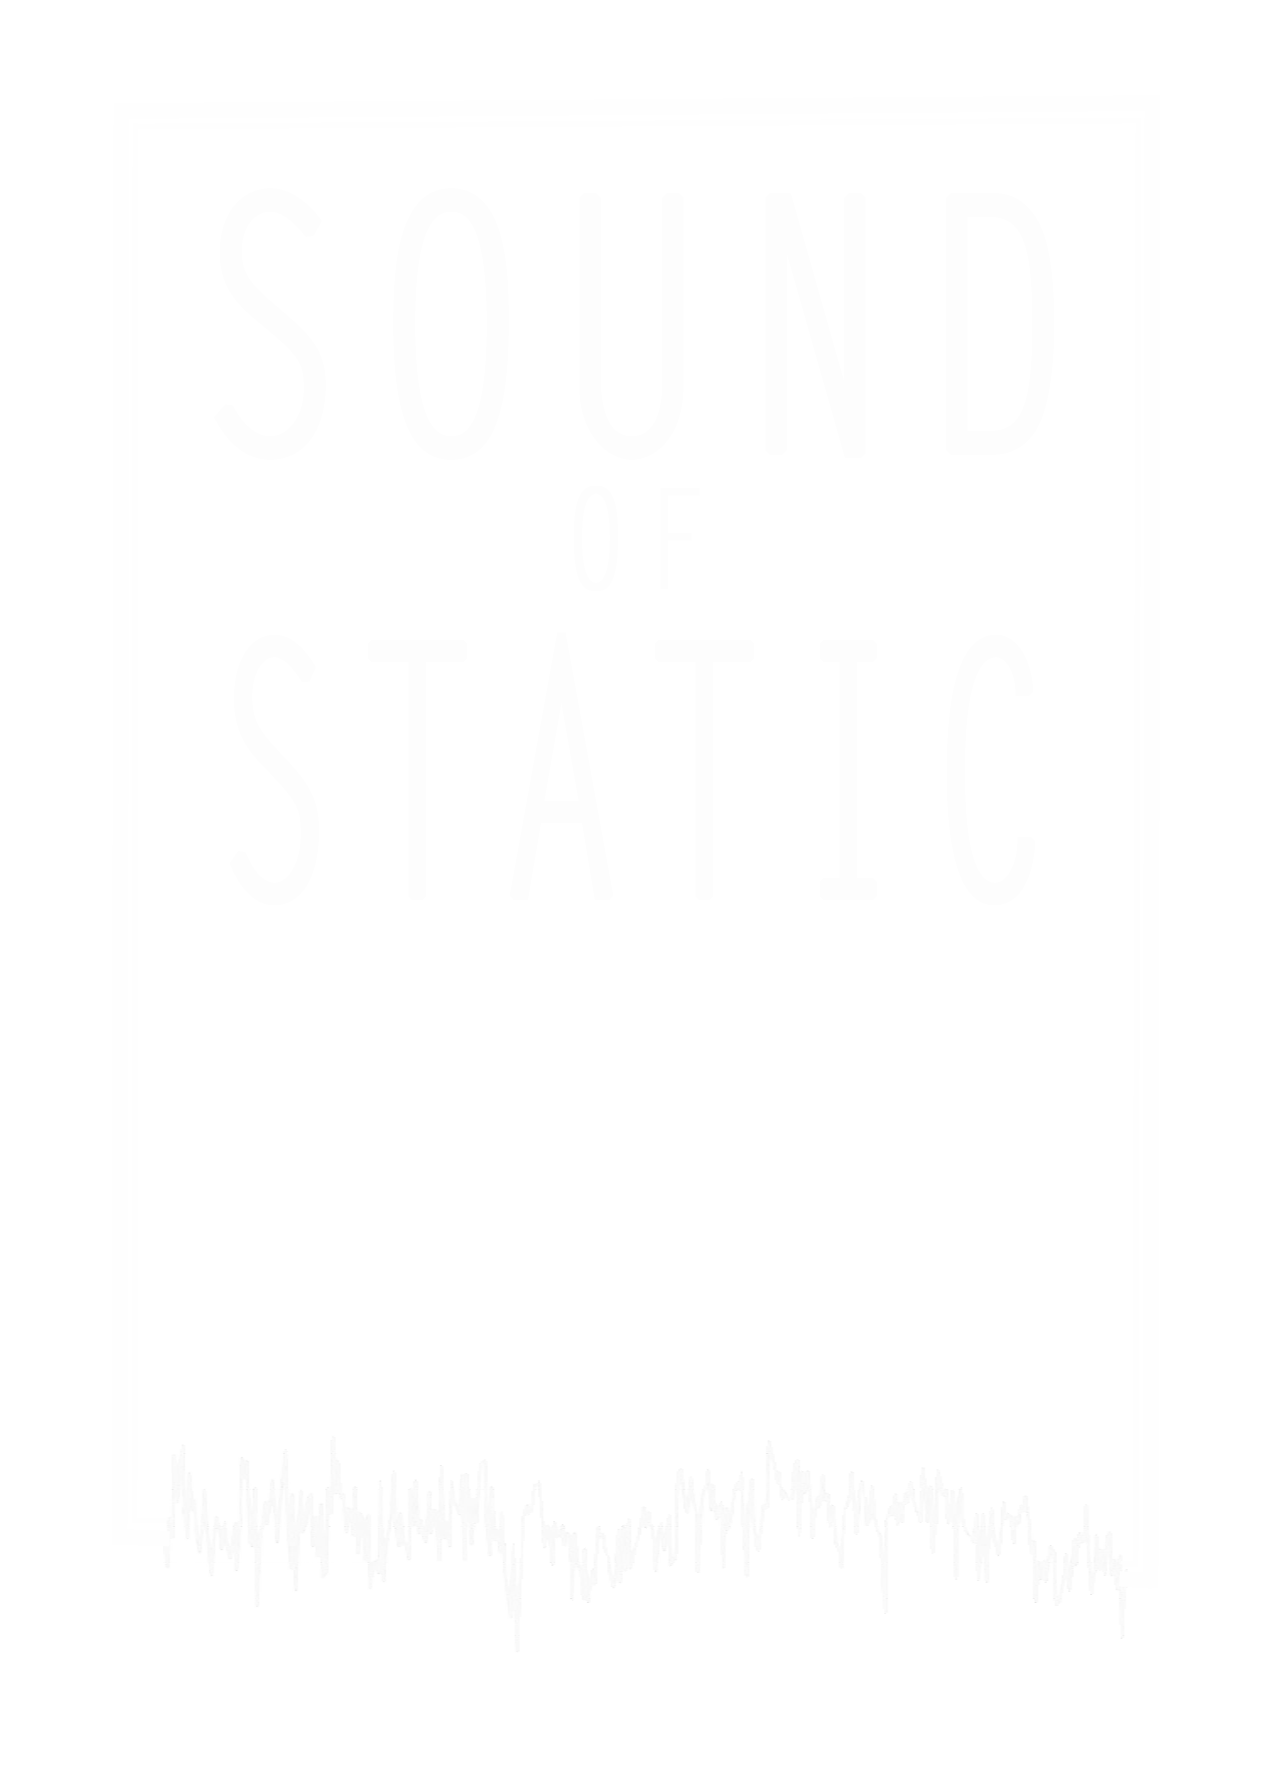 Sound of Static